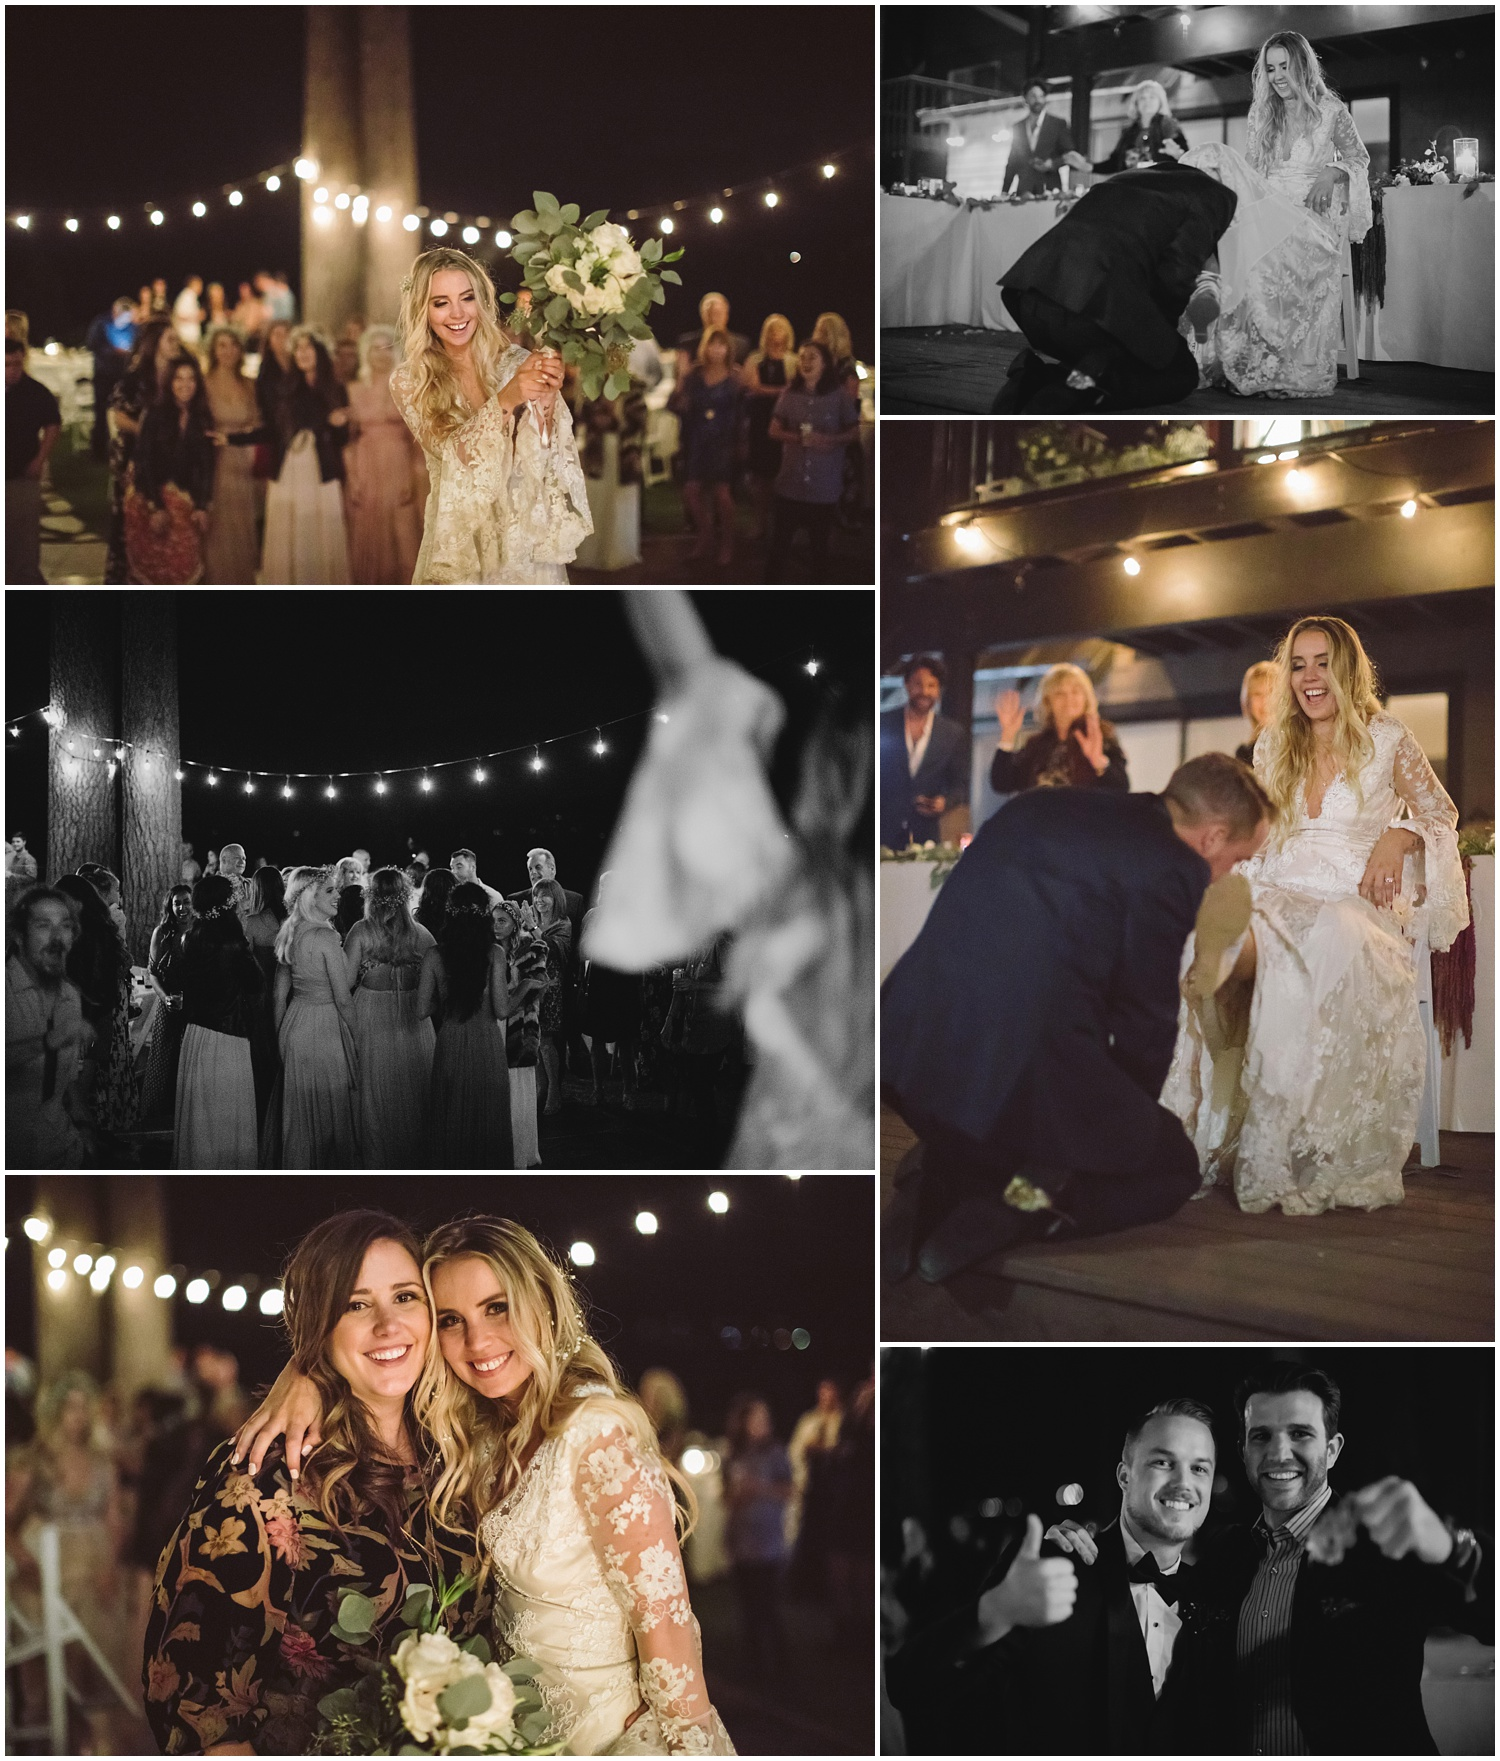 Lindsay and Bret South Lake Tahoe Bohemian Wedding Reception